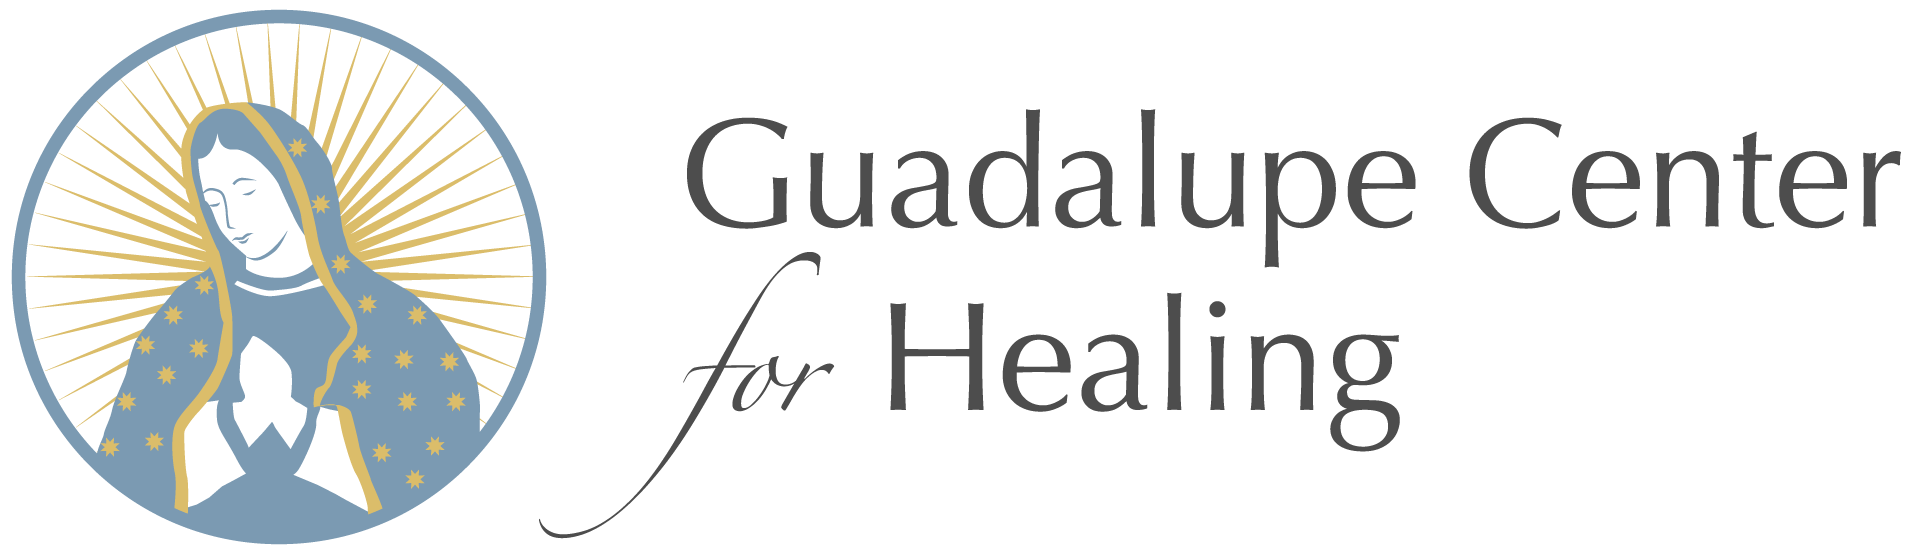 About – Guadalupe Center for Healing